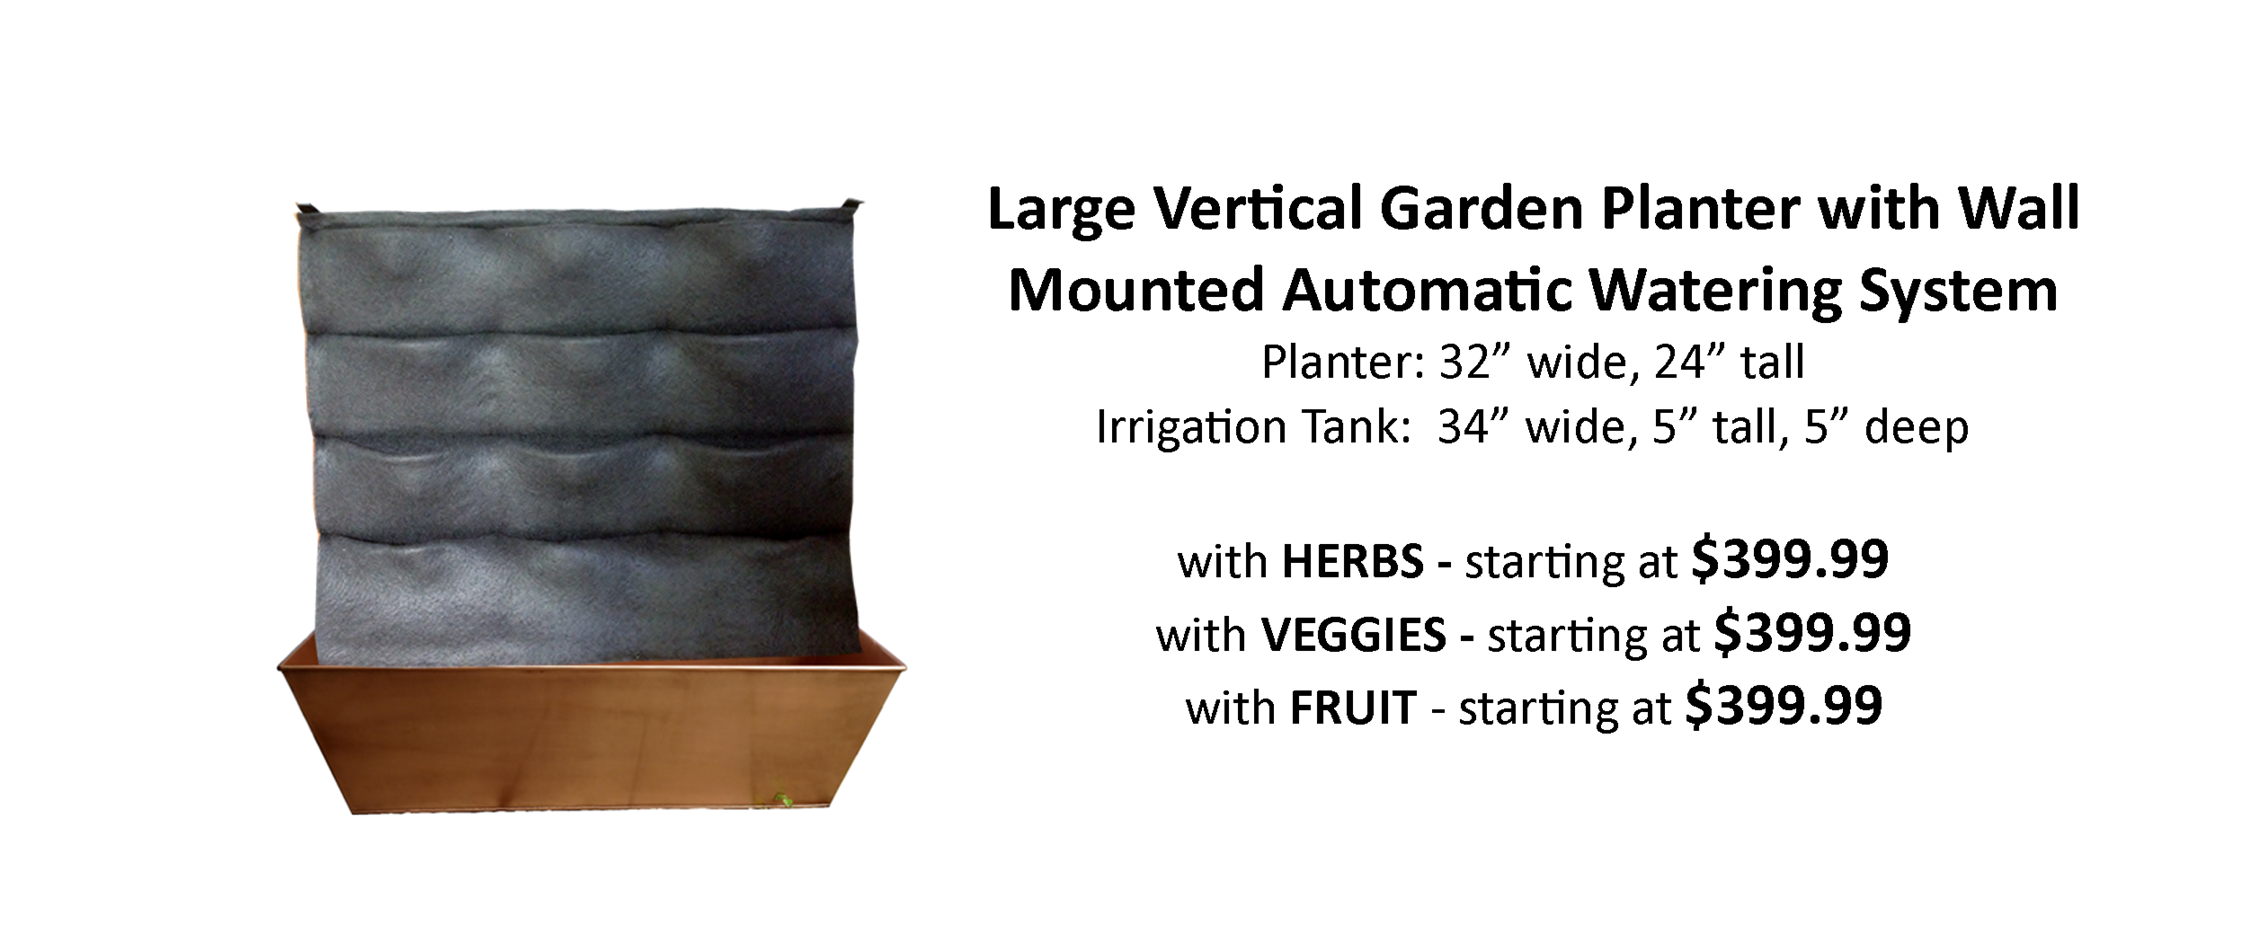 Automatically Watered Living Wall Kit Pre Planted with Herbs Veggies and Fruit